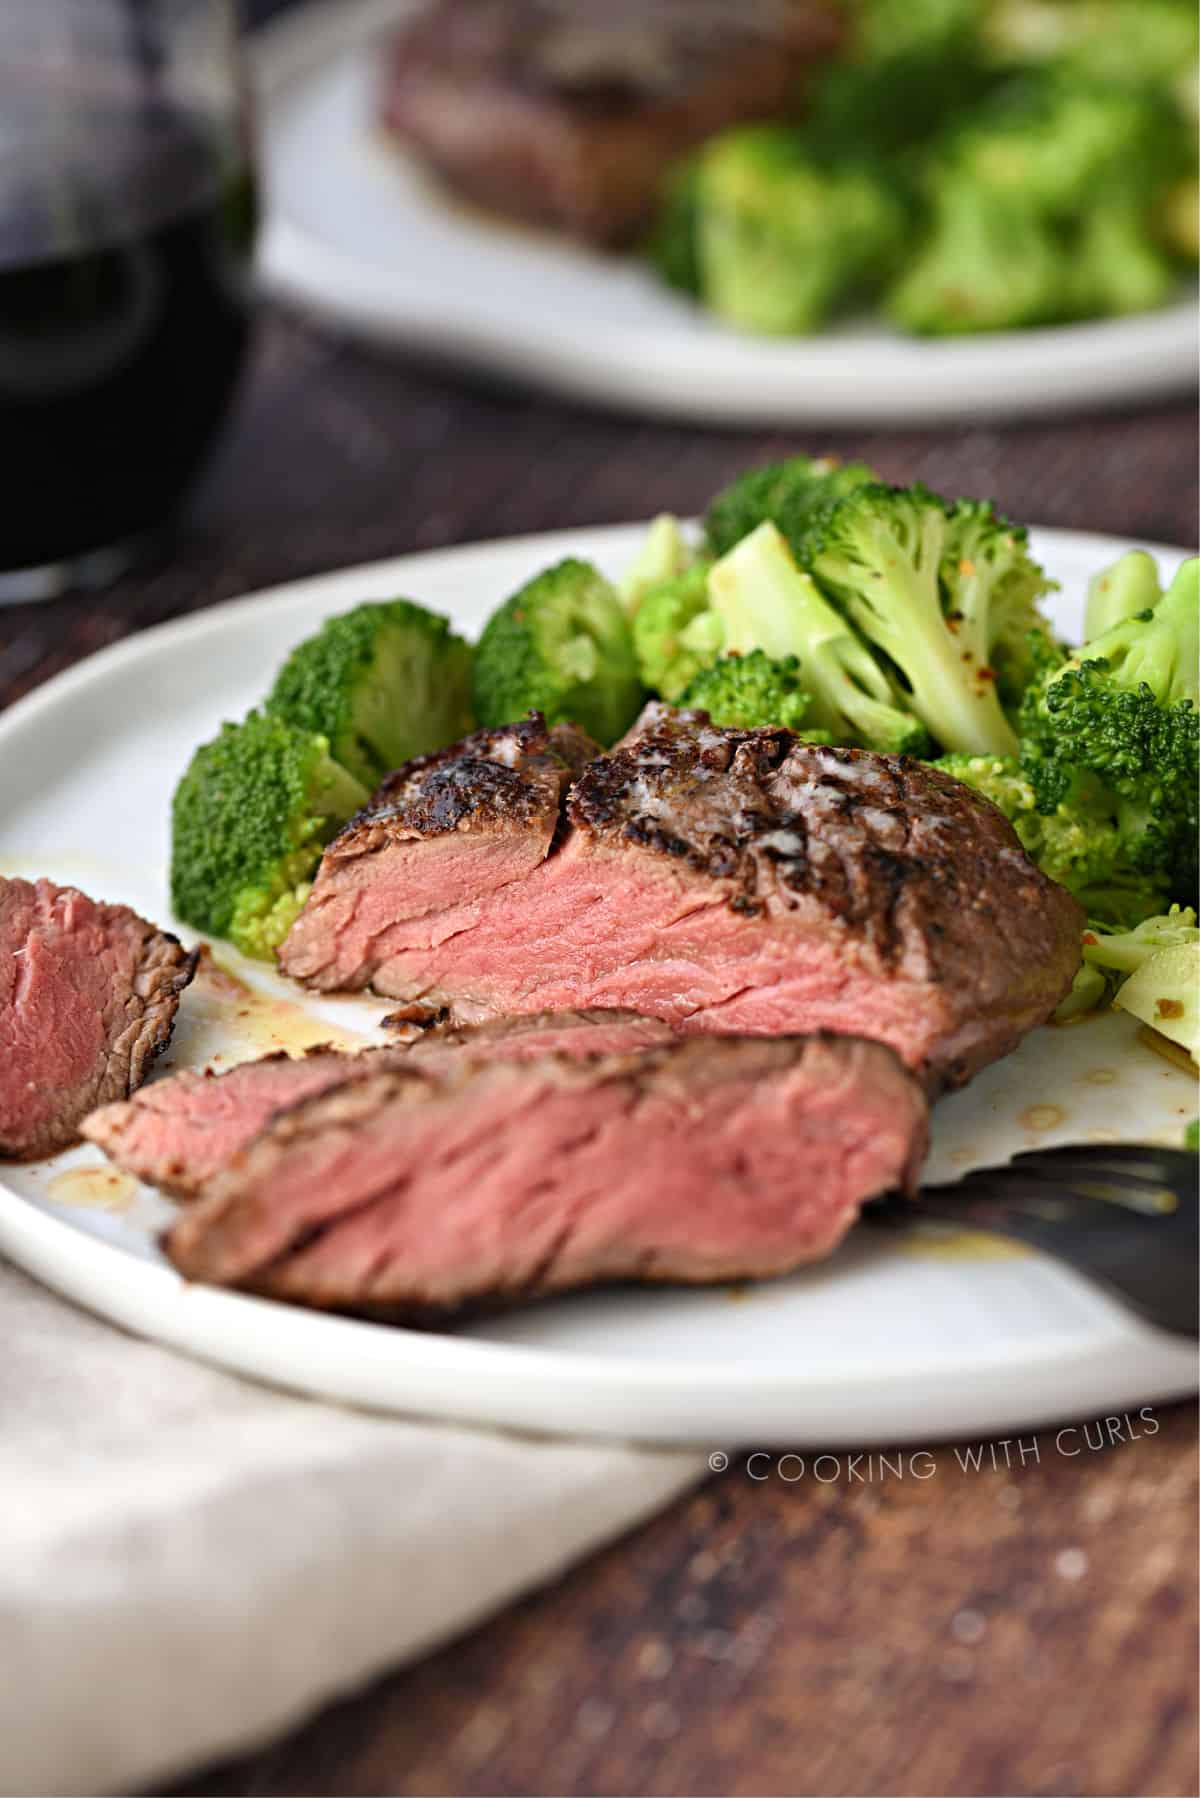 sliced filet mignon on a white plate with broccoli florets, with a second place and a glass of red wine in the background.